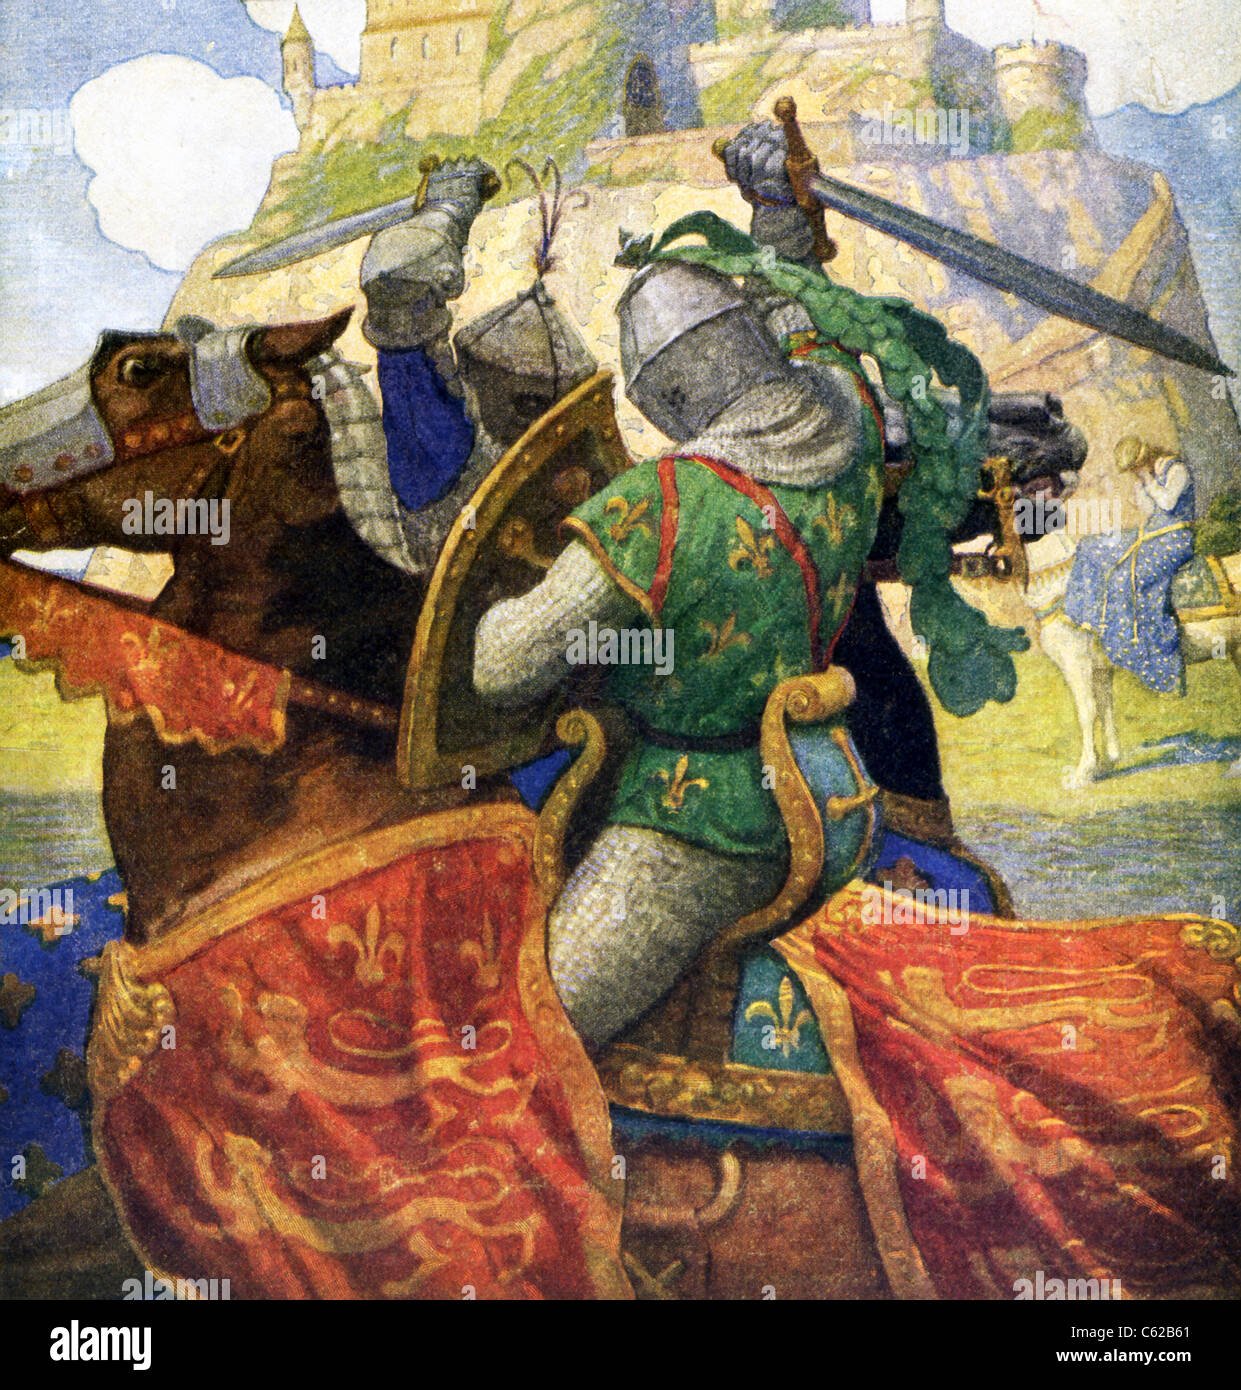 The two knights are Anglo-Saxon knights and specifically represent those associated with King Arthur and his Knights. - Stock Image